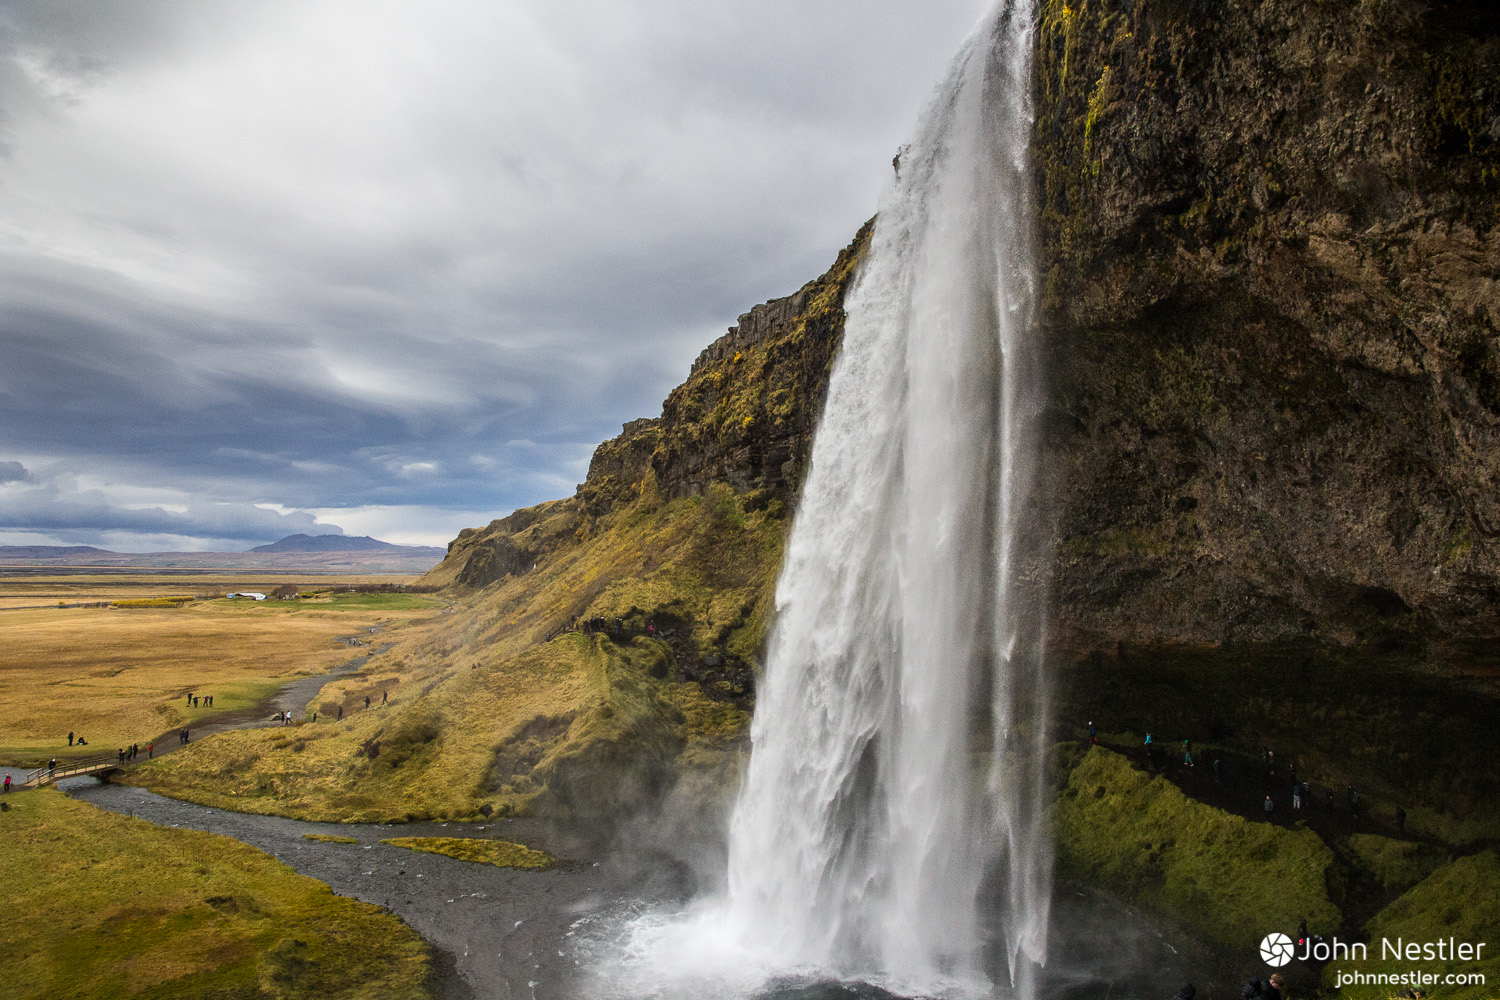 Seljalandsfoss waterfall is one of the more visited attractions in Iceland, and the human impacts show.